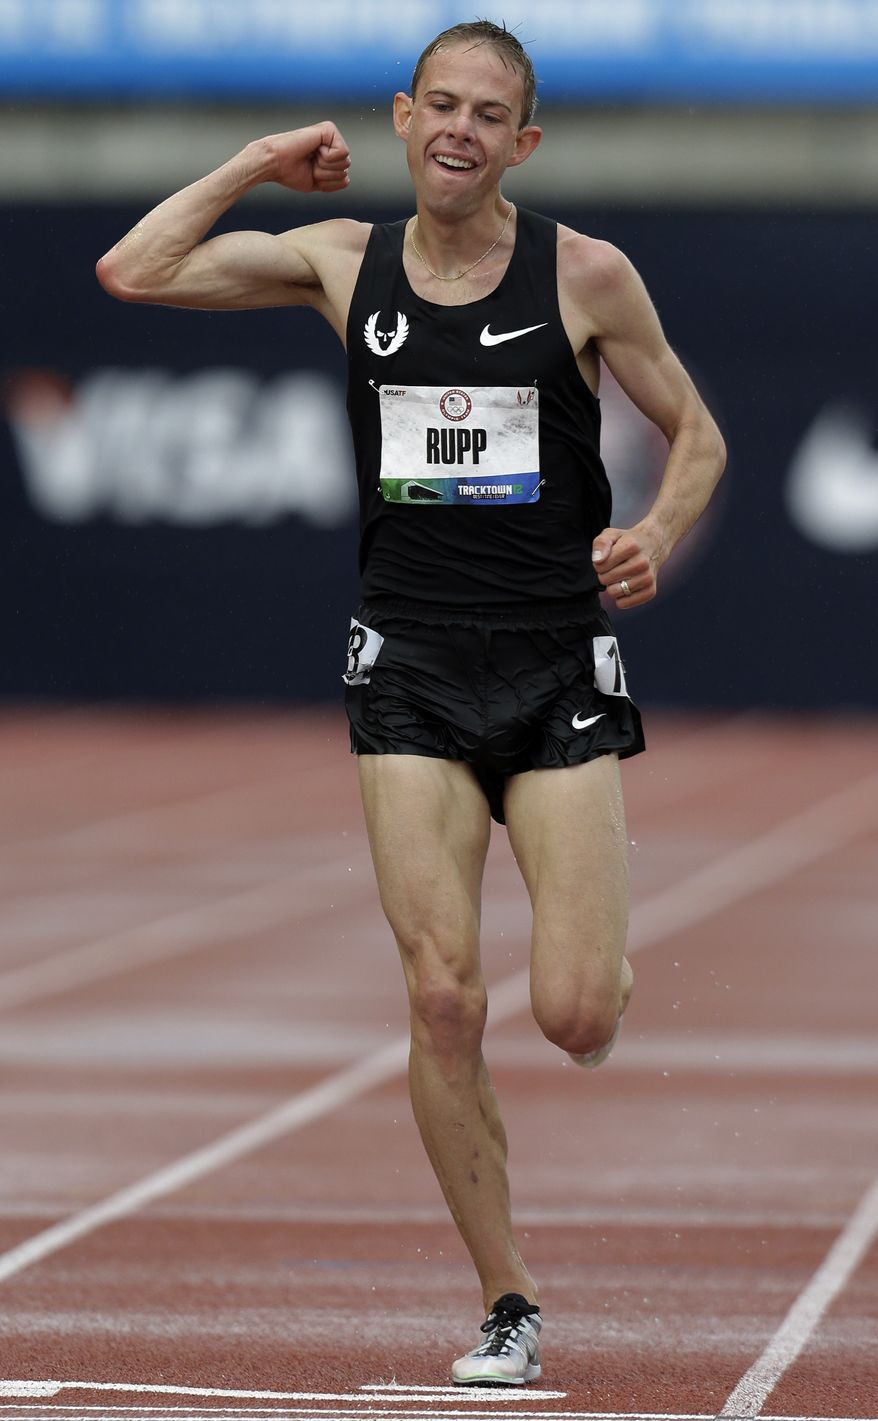 Galen Rupp reacts after finishing the men's 10,000m finals at the U.S. Olympic Track and Field Trials on Friday, June 22, 2012, in Eugene, Ore. Rupp finished first, Matt Tegenkapm second and Dathan Ritzenhein third. The three will represent the U.S. in the London Olympics. (AP Photo/Eric Gay)